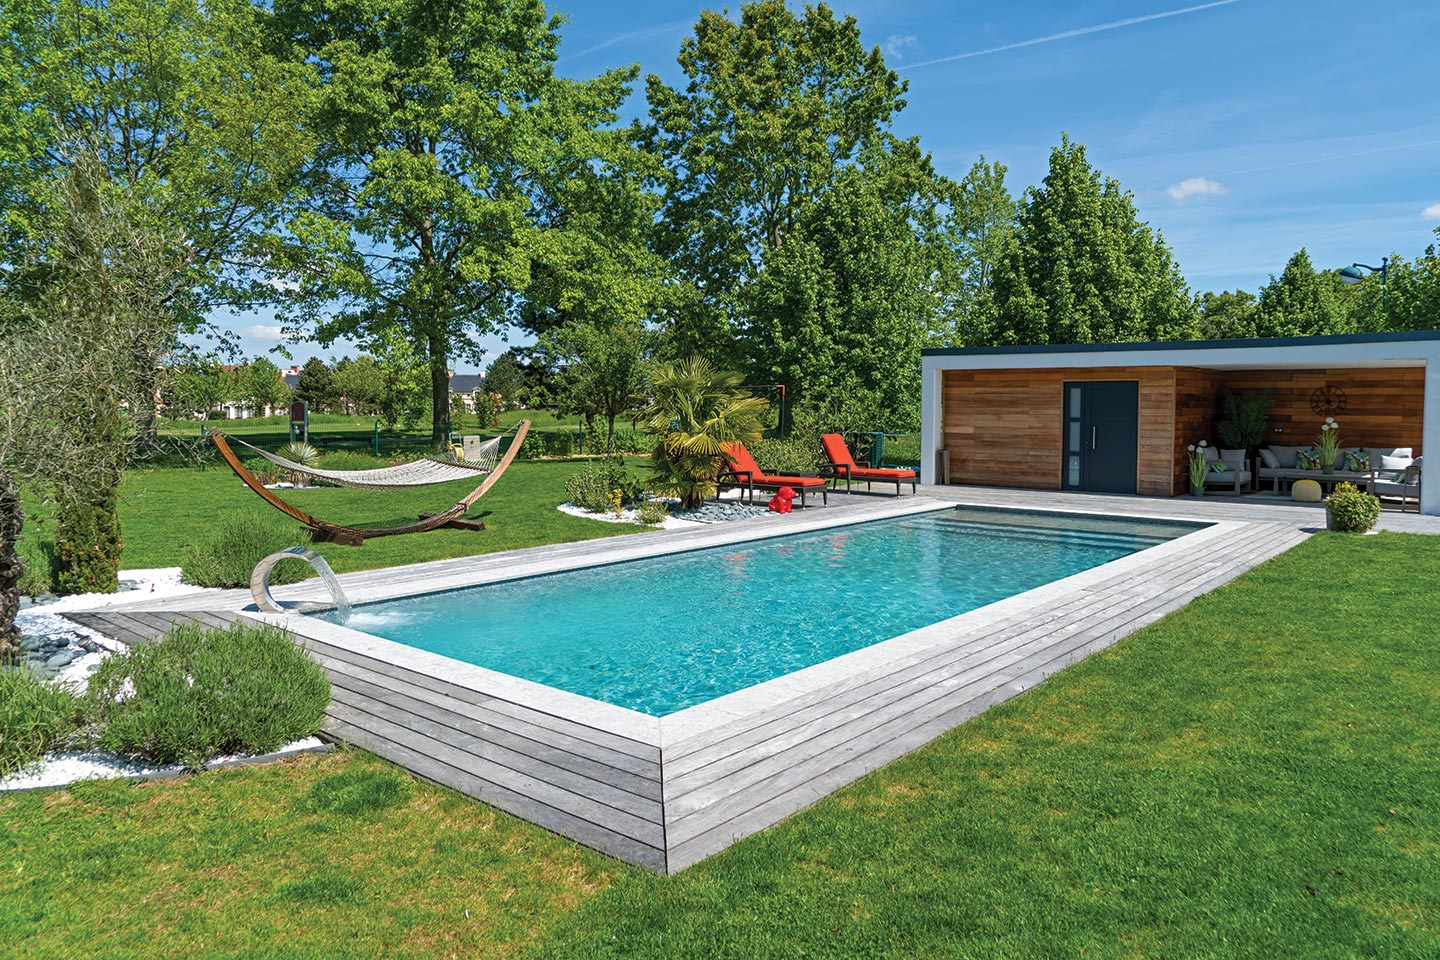 piscine-rectangle-Diffazur-2019-galerie-photos-7